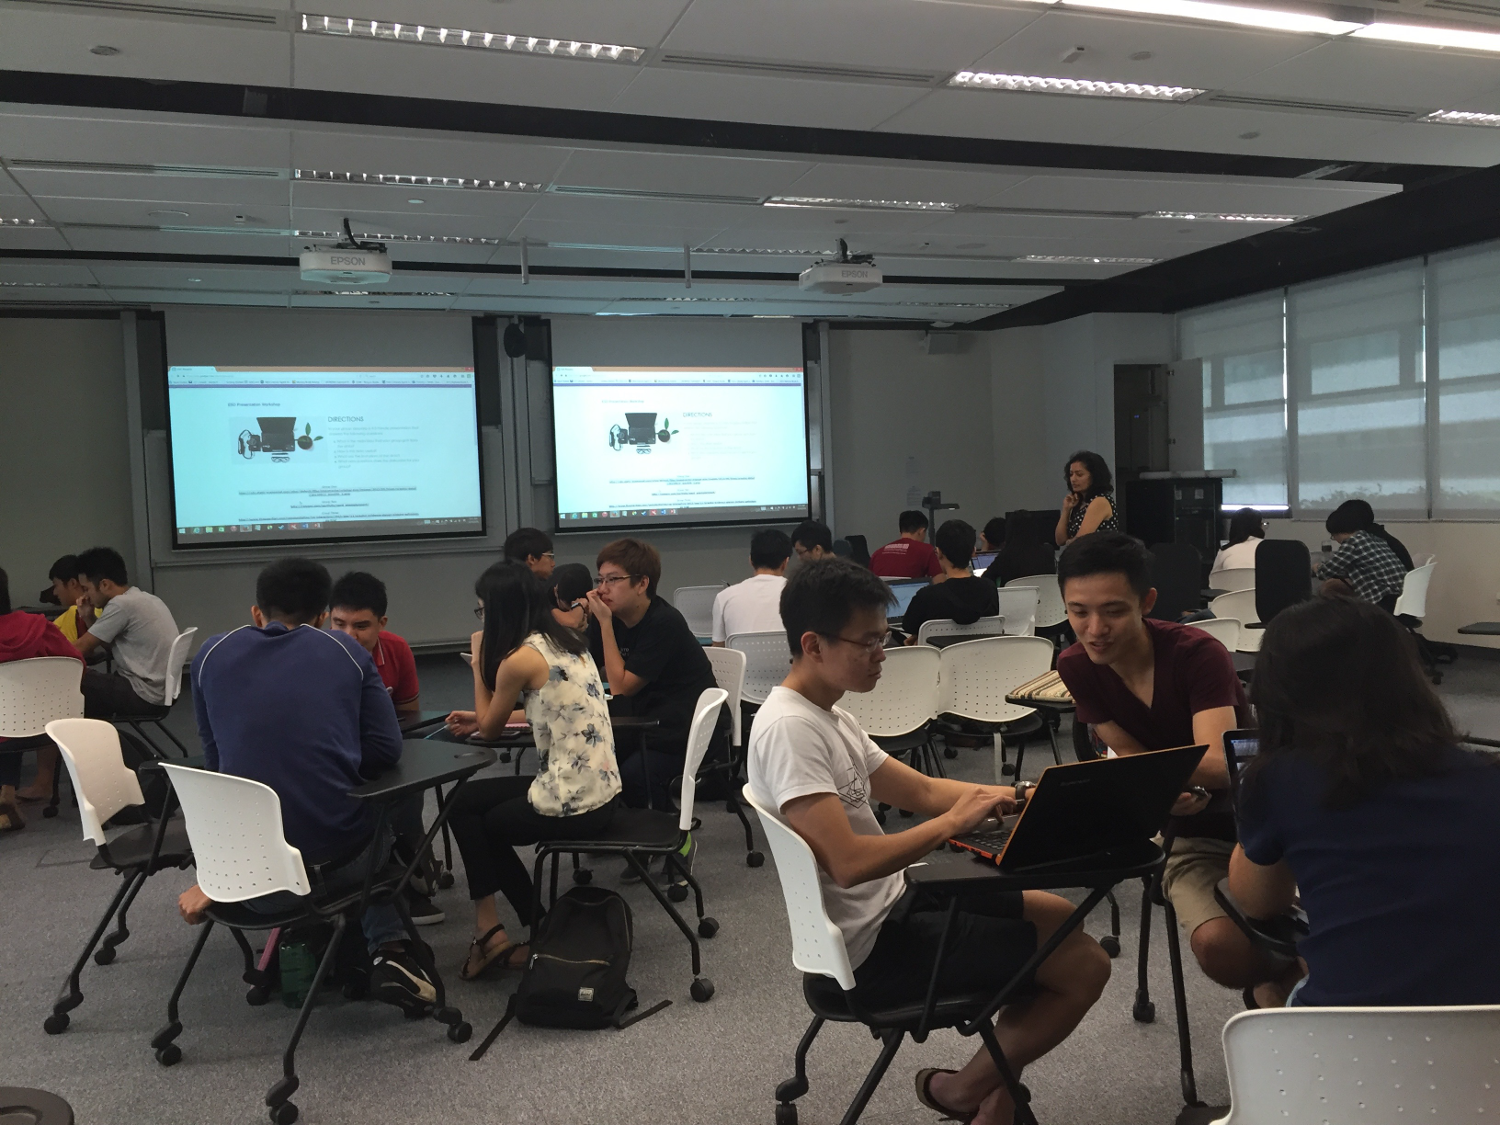 Students discussing in groups at tables during a workshop